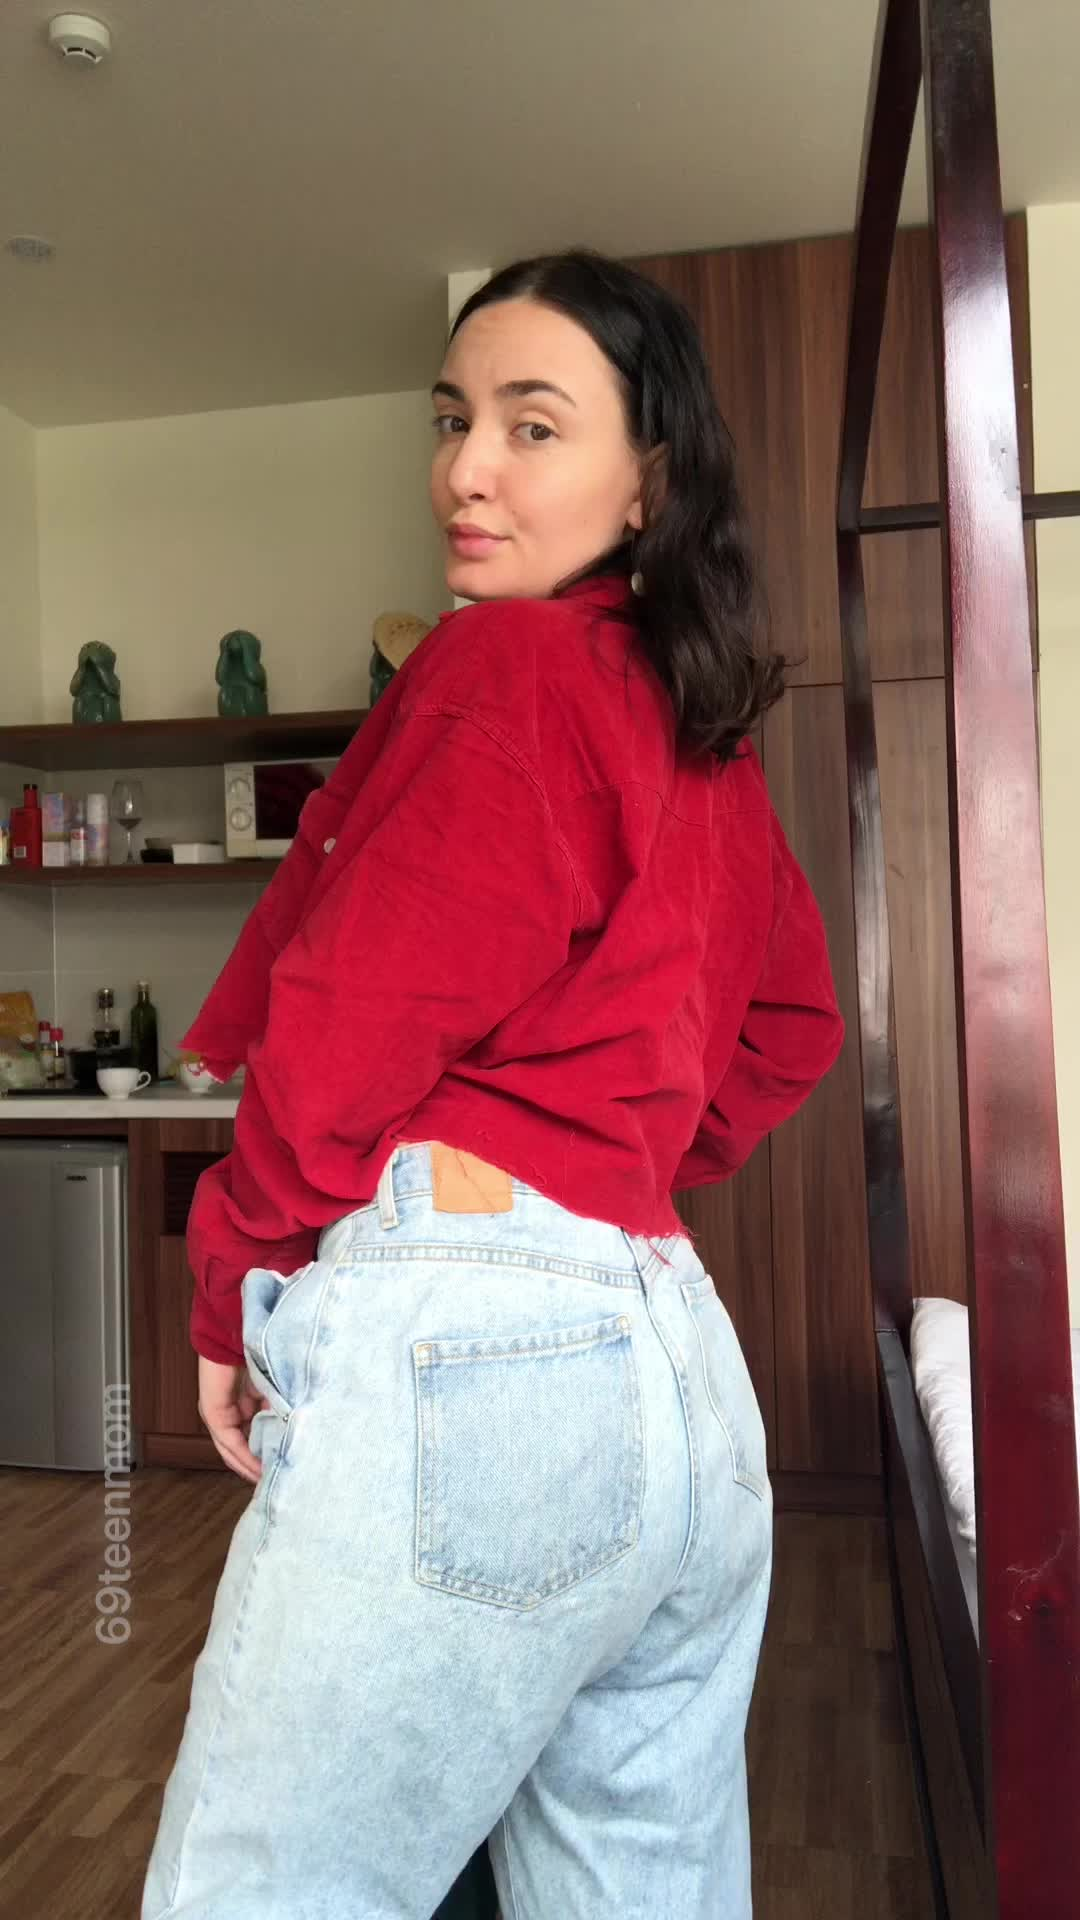 a little curvy, just hide it in these baggy jeans